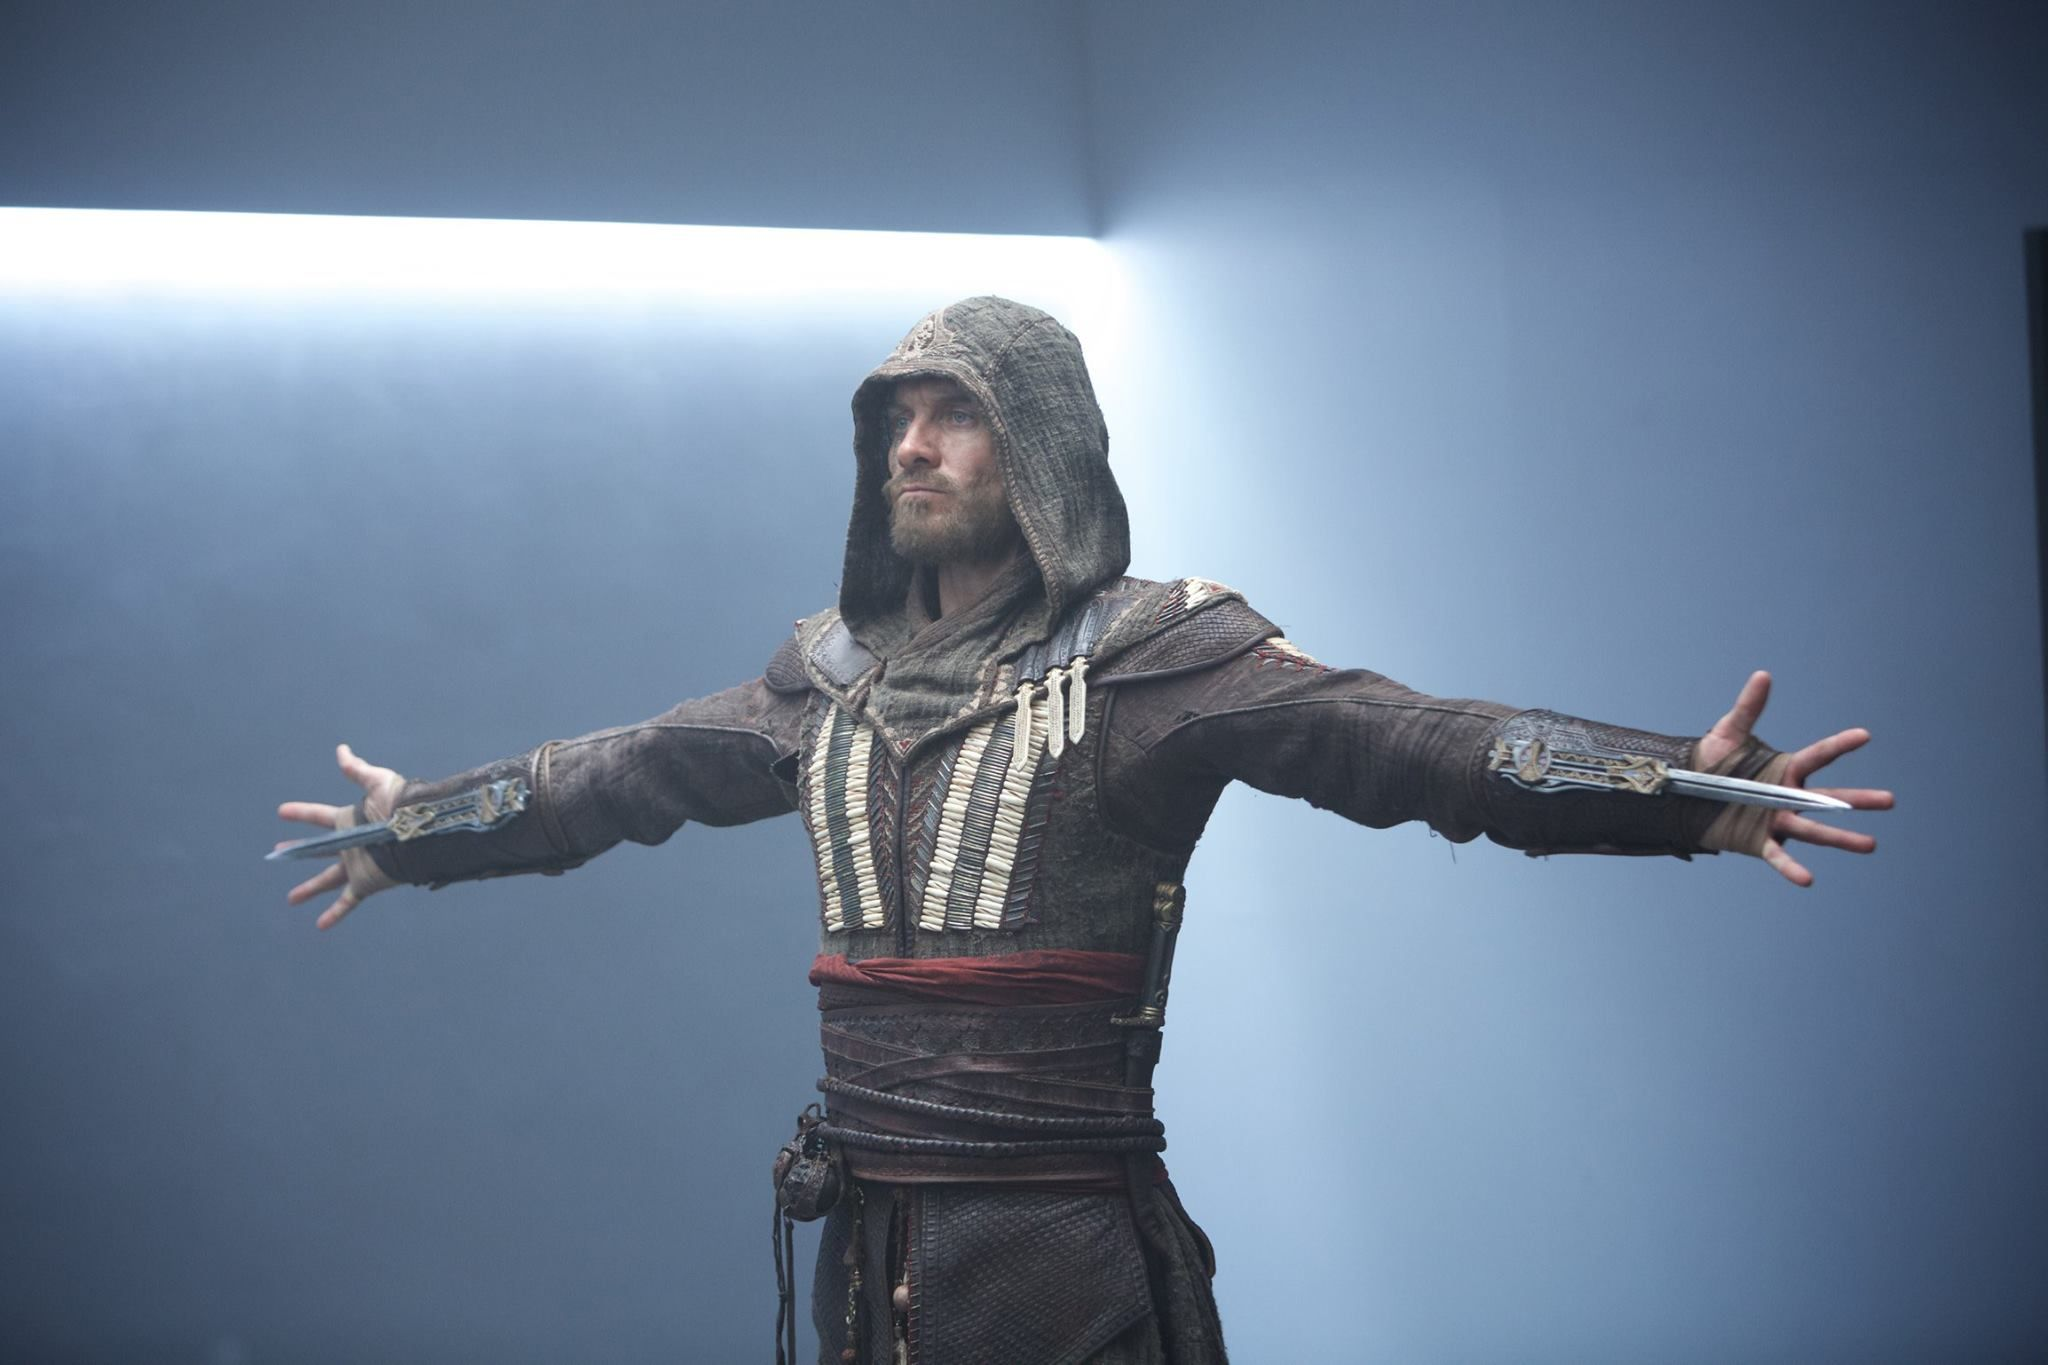 AssassinS Creed Film Cda